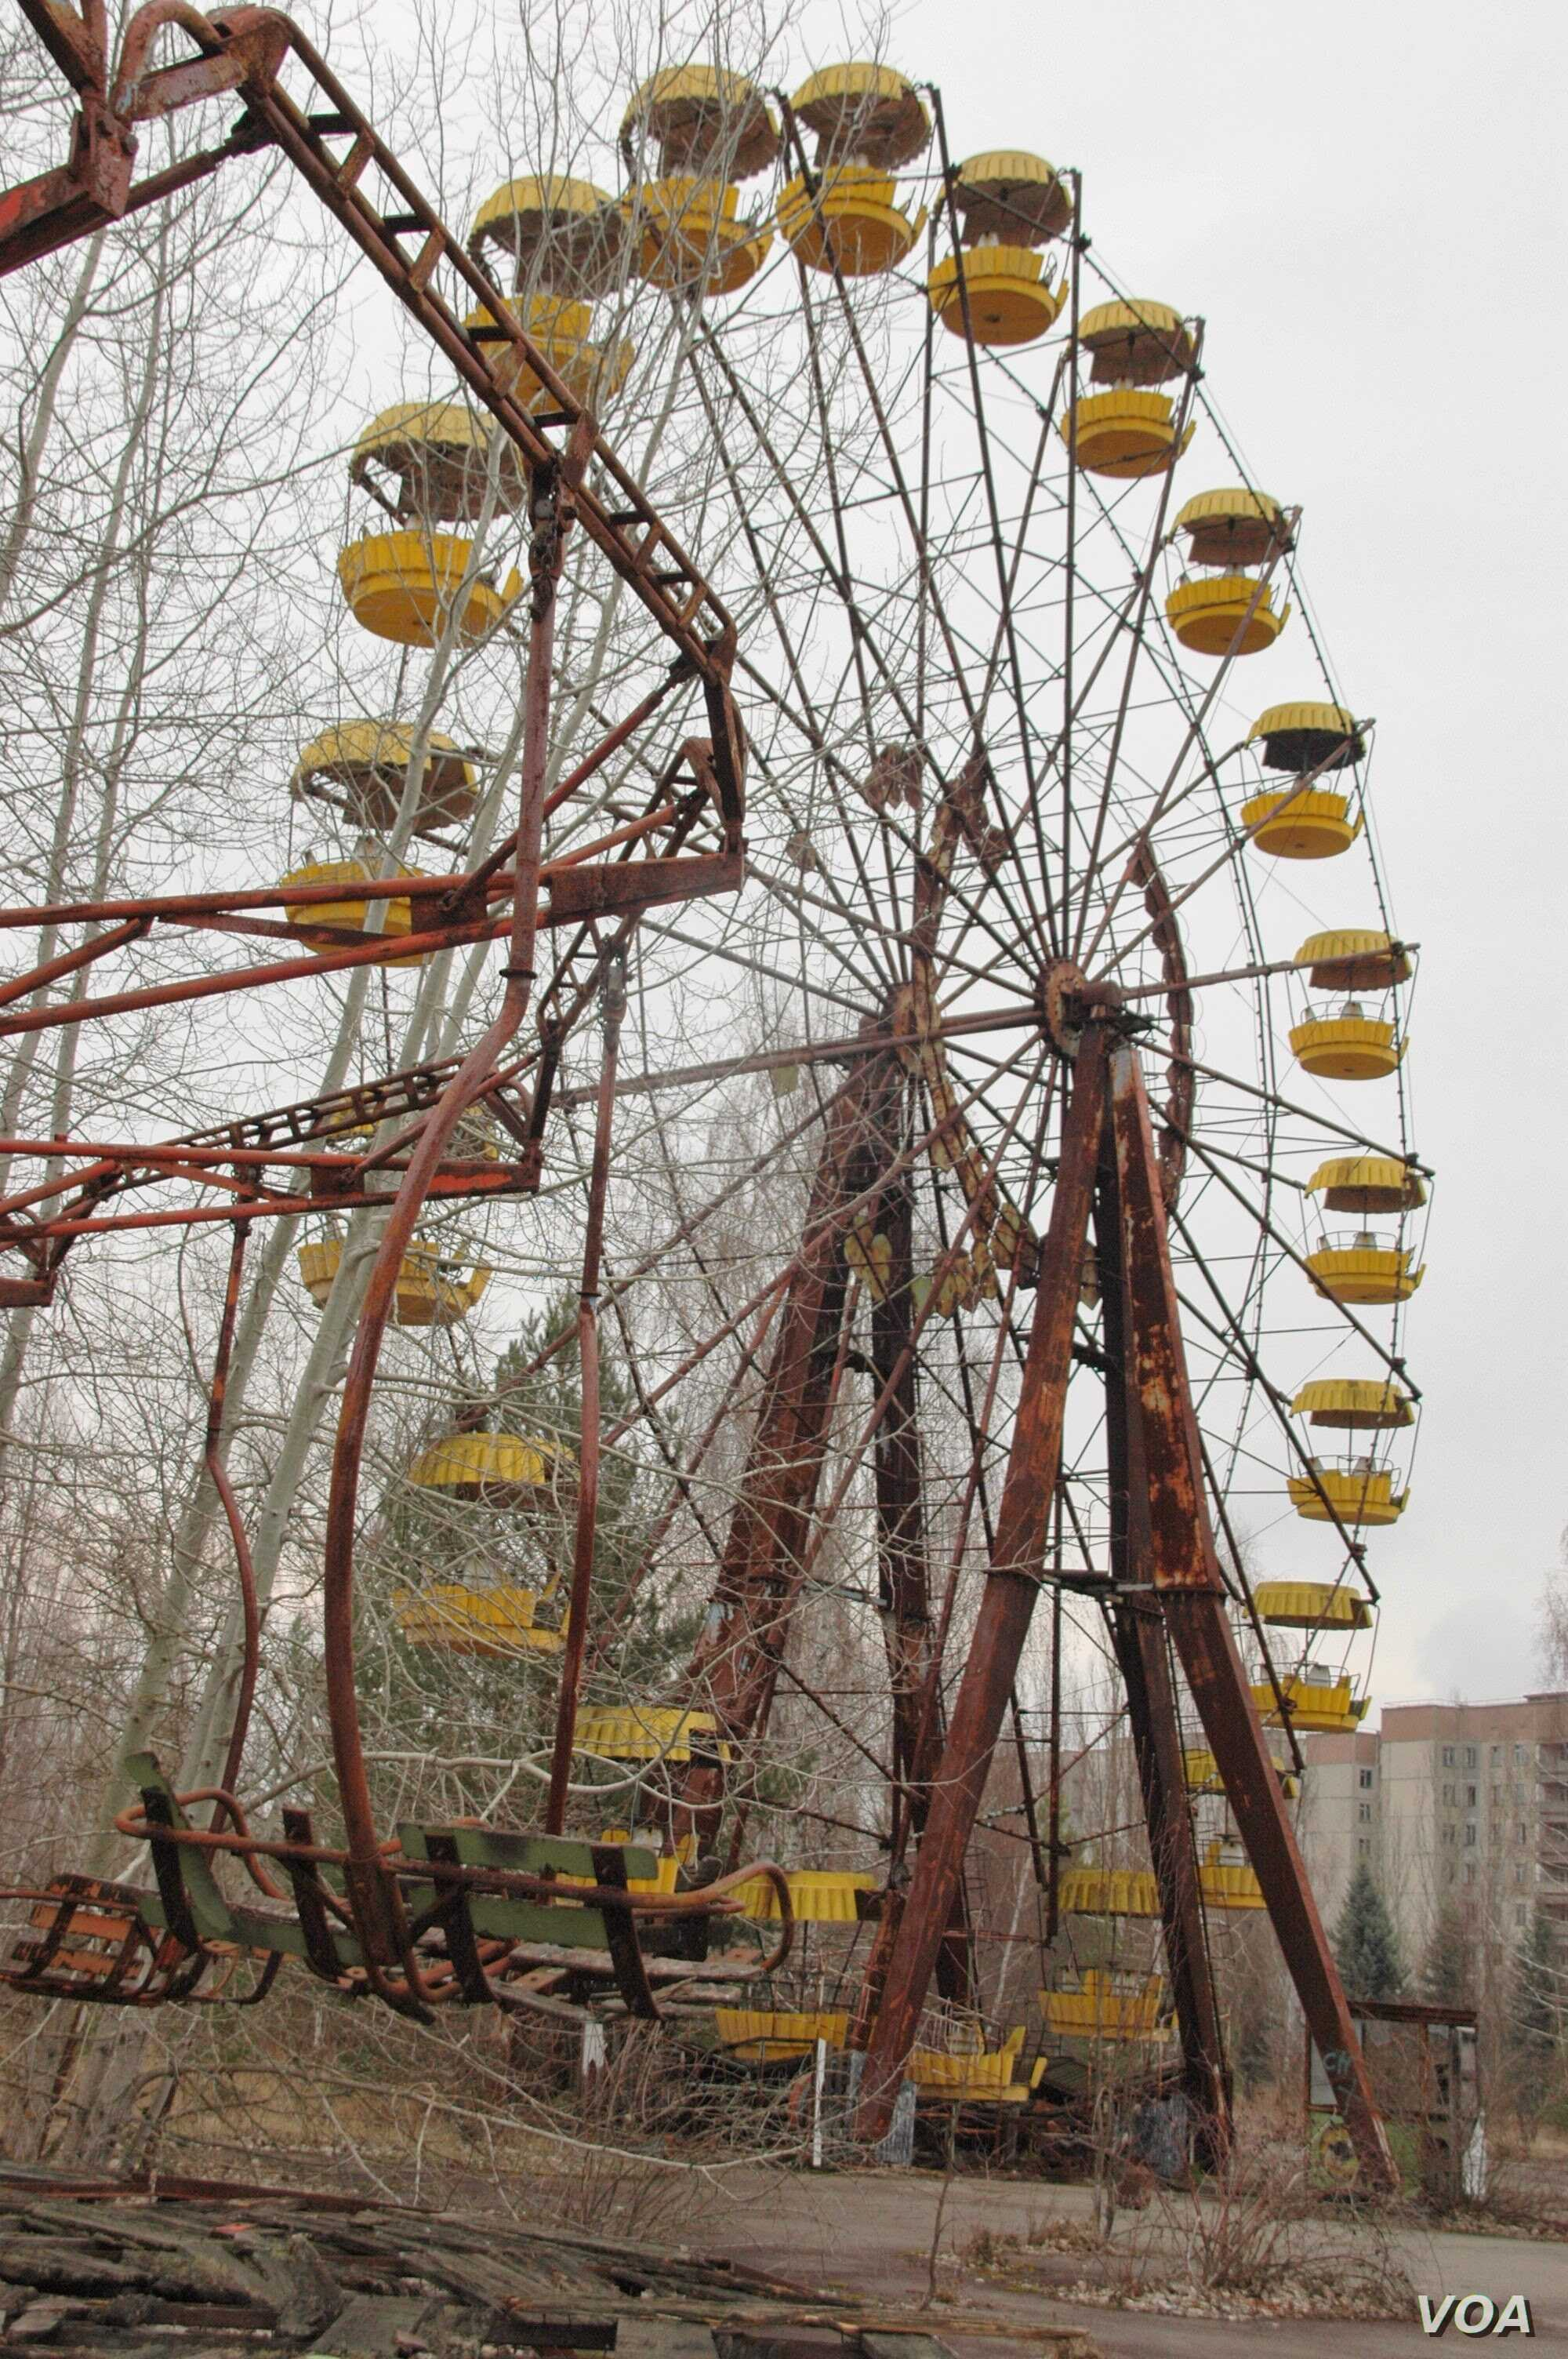 The ferris wheel at the abandoned Pripyat amusement park adjacent to Chernobyl, March 20, 2014. (S. Herman/VOA)